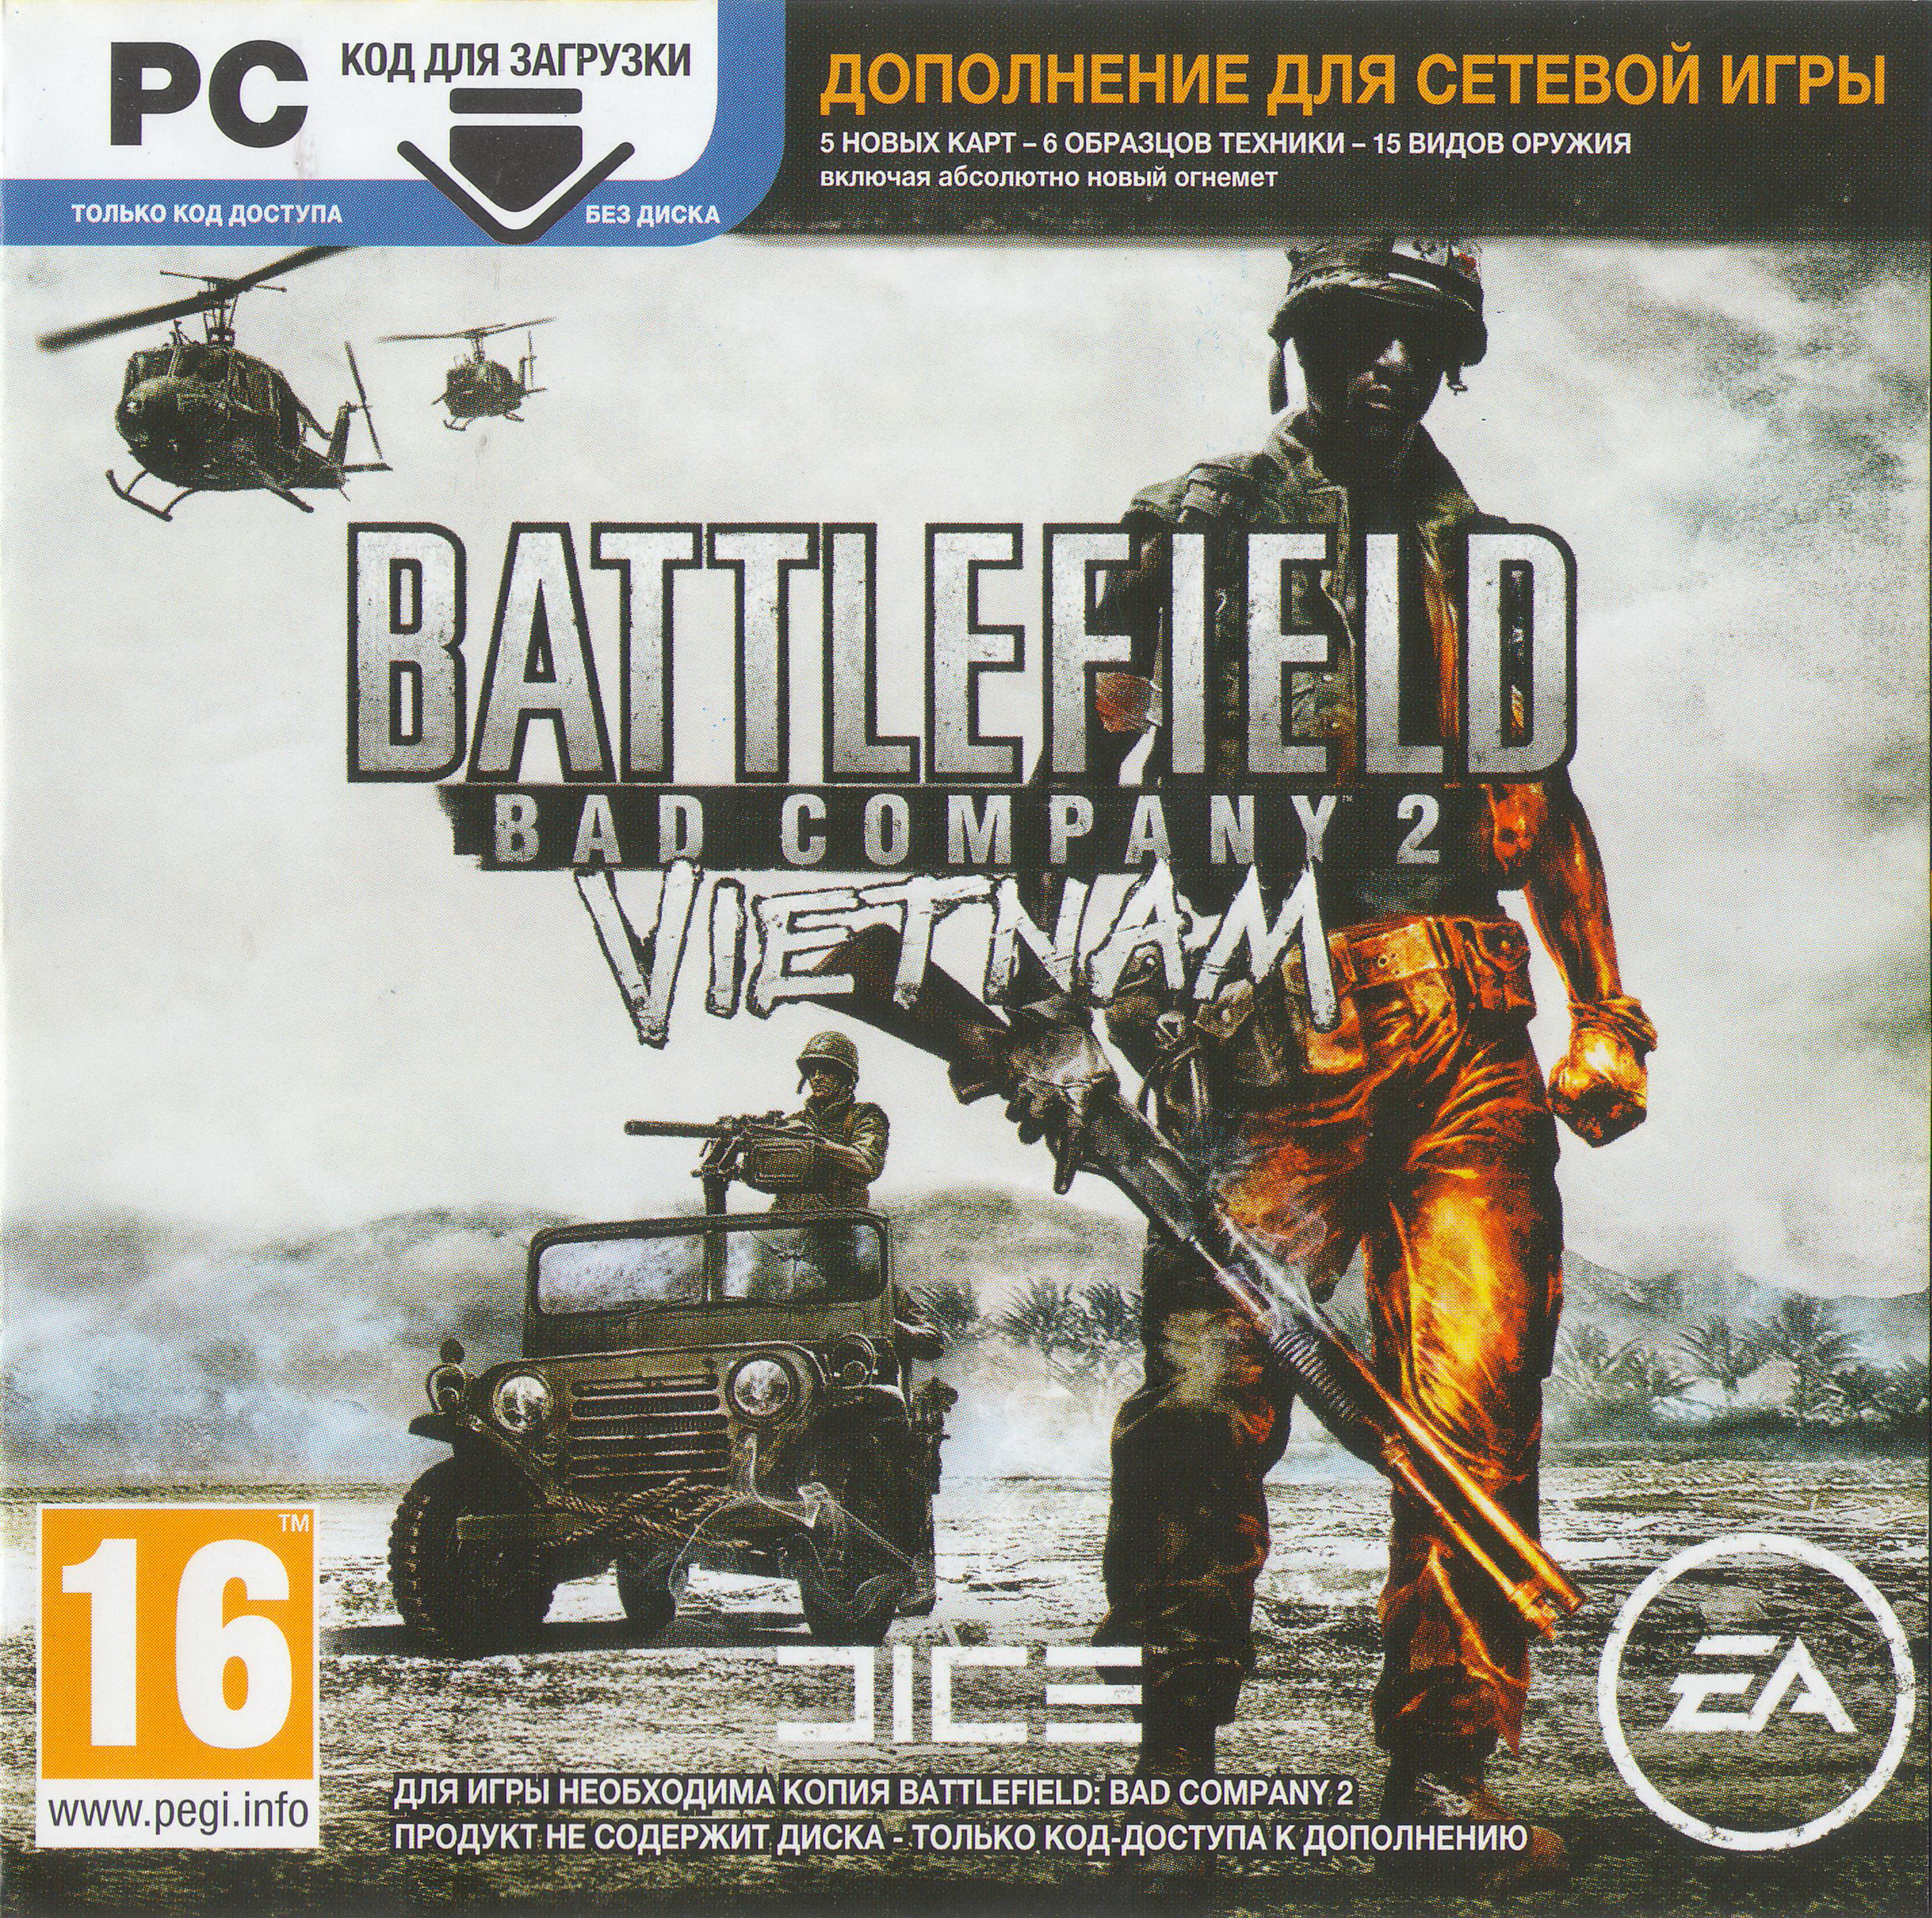 Купить Battlefield Bad Company 2 Vietnam (CD-KEY) .